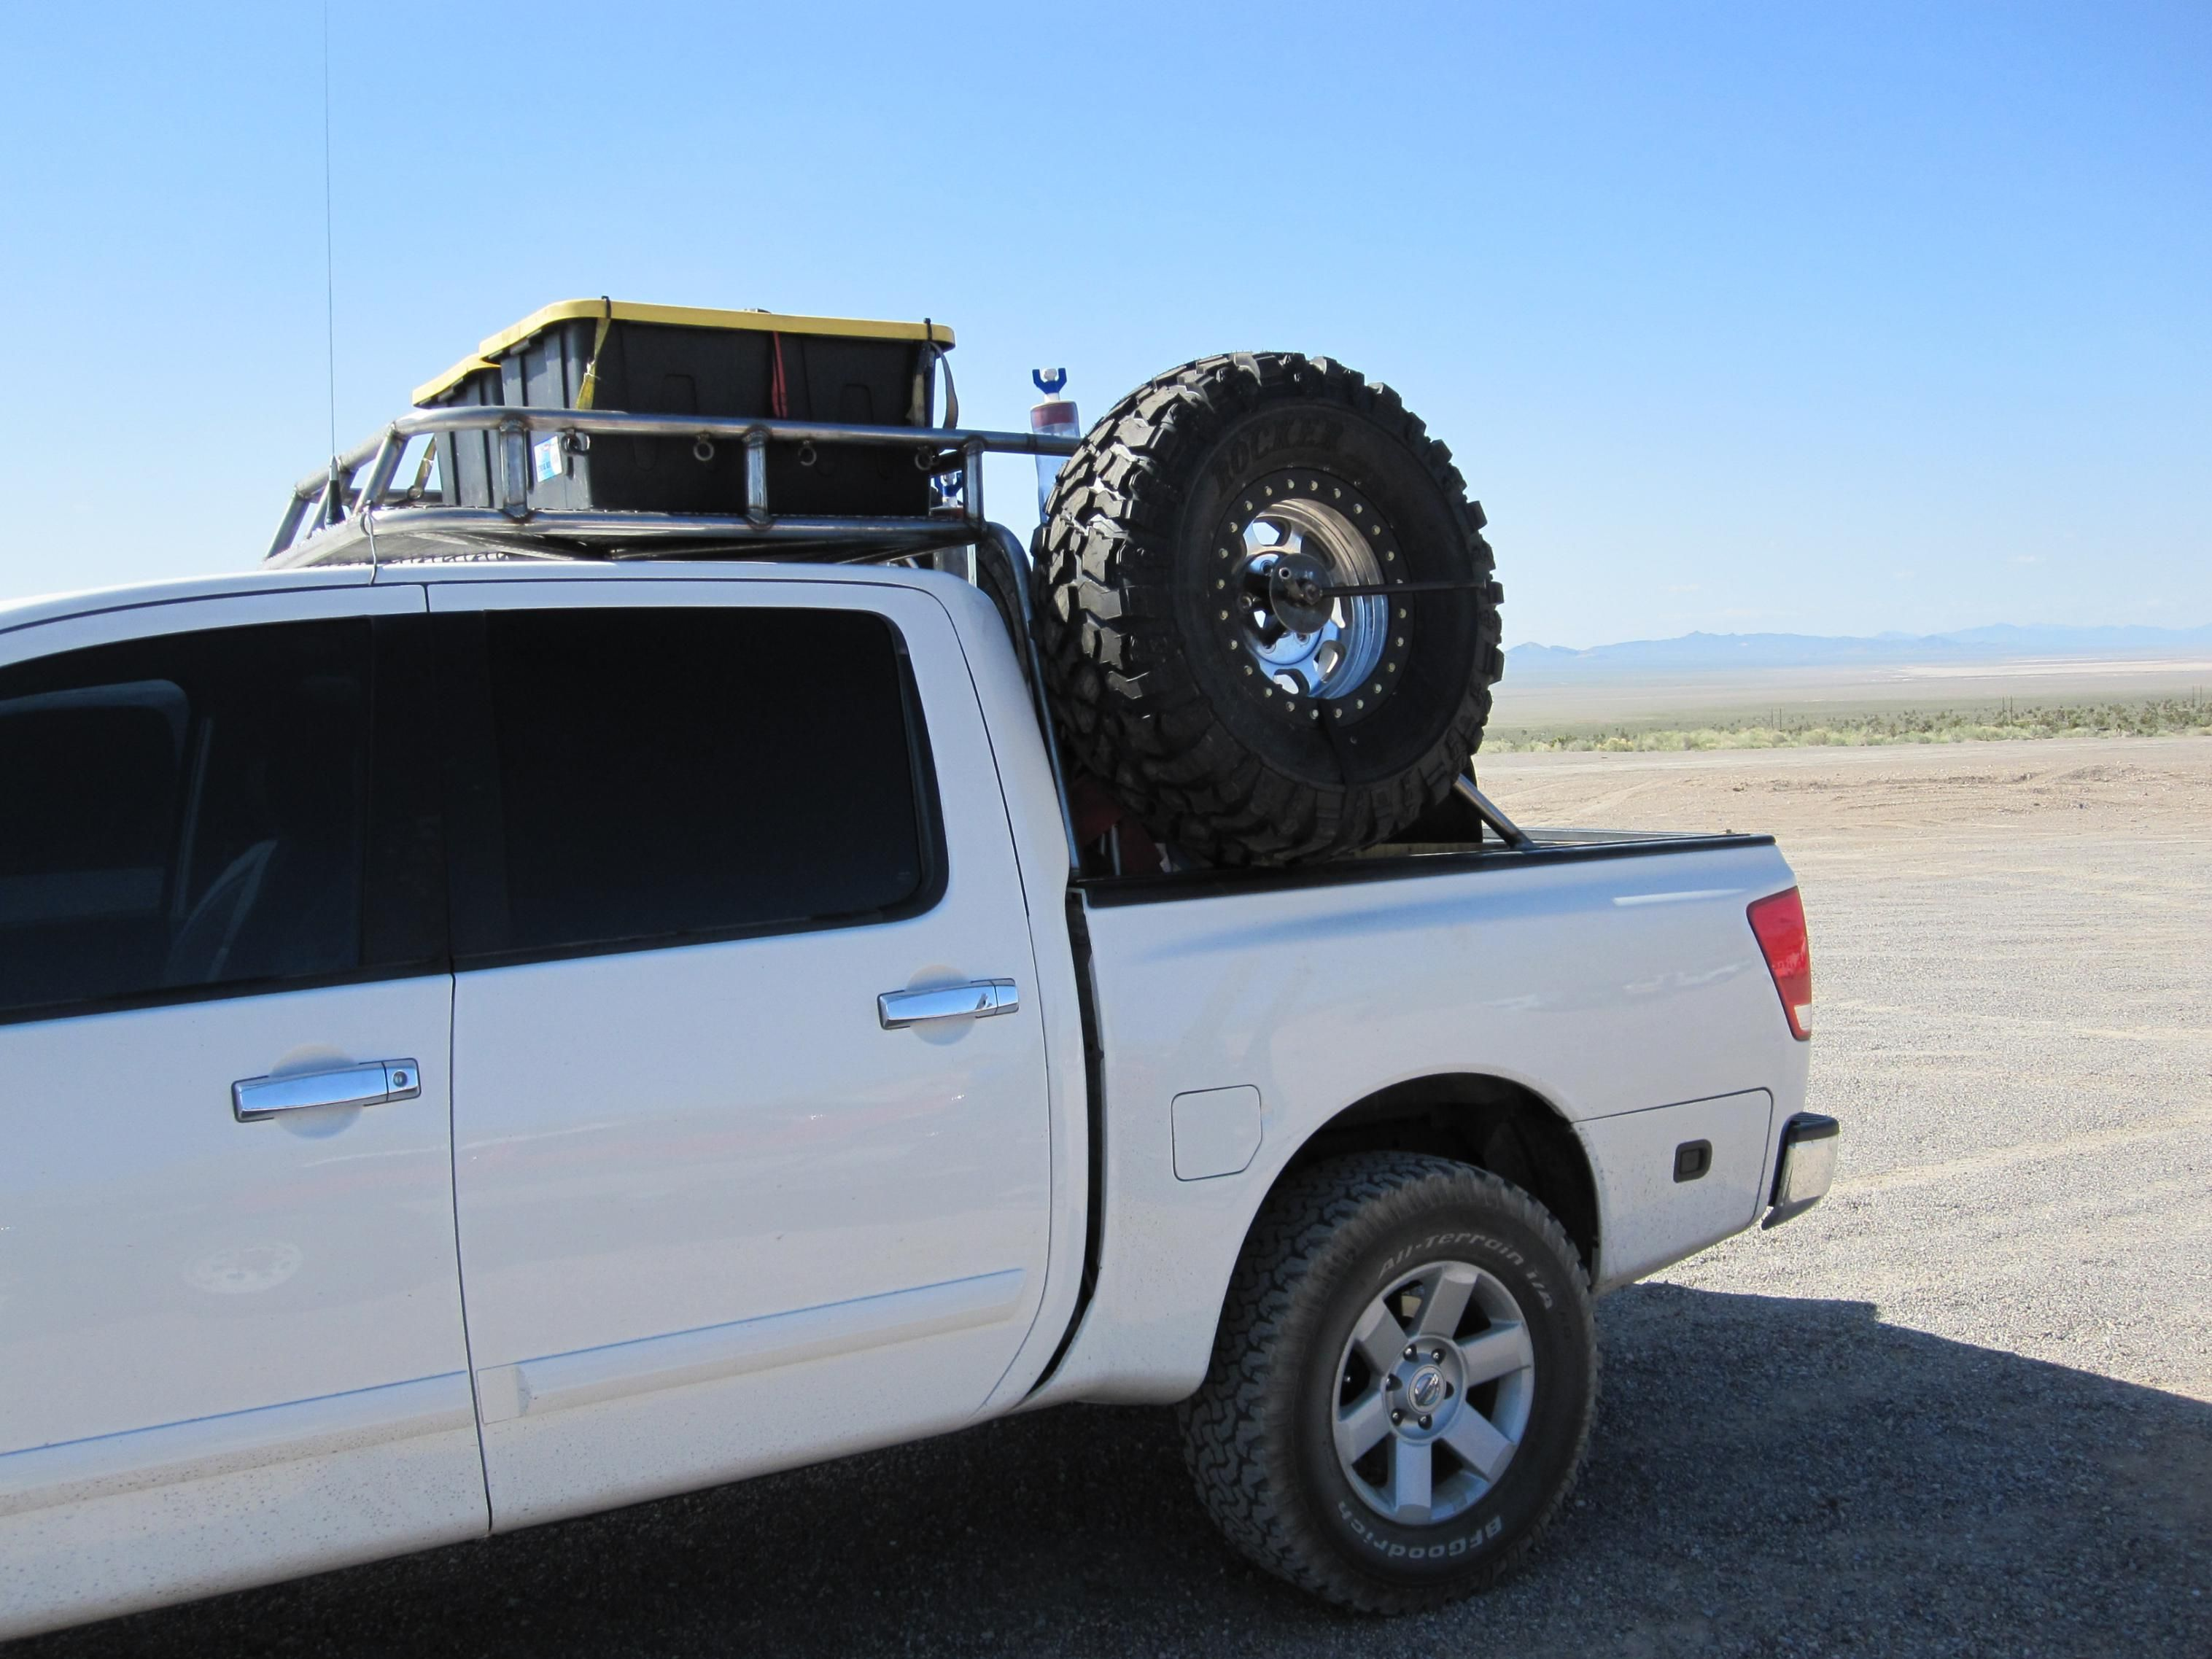 Dissent offroad racks on my truck, Truck